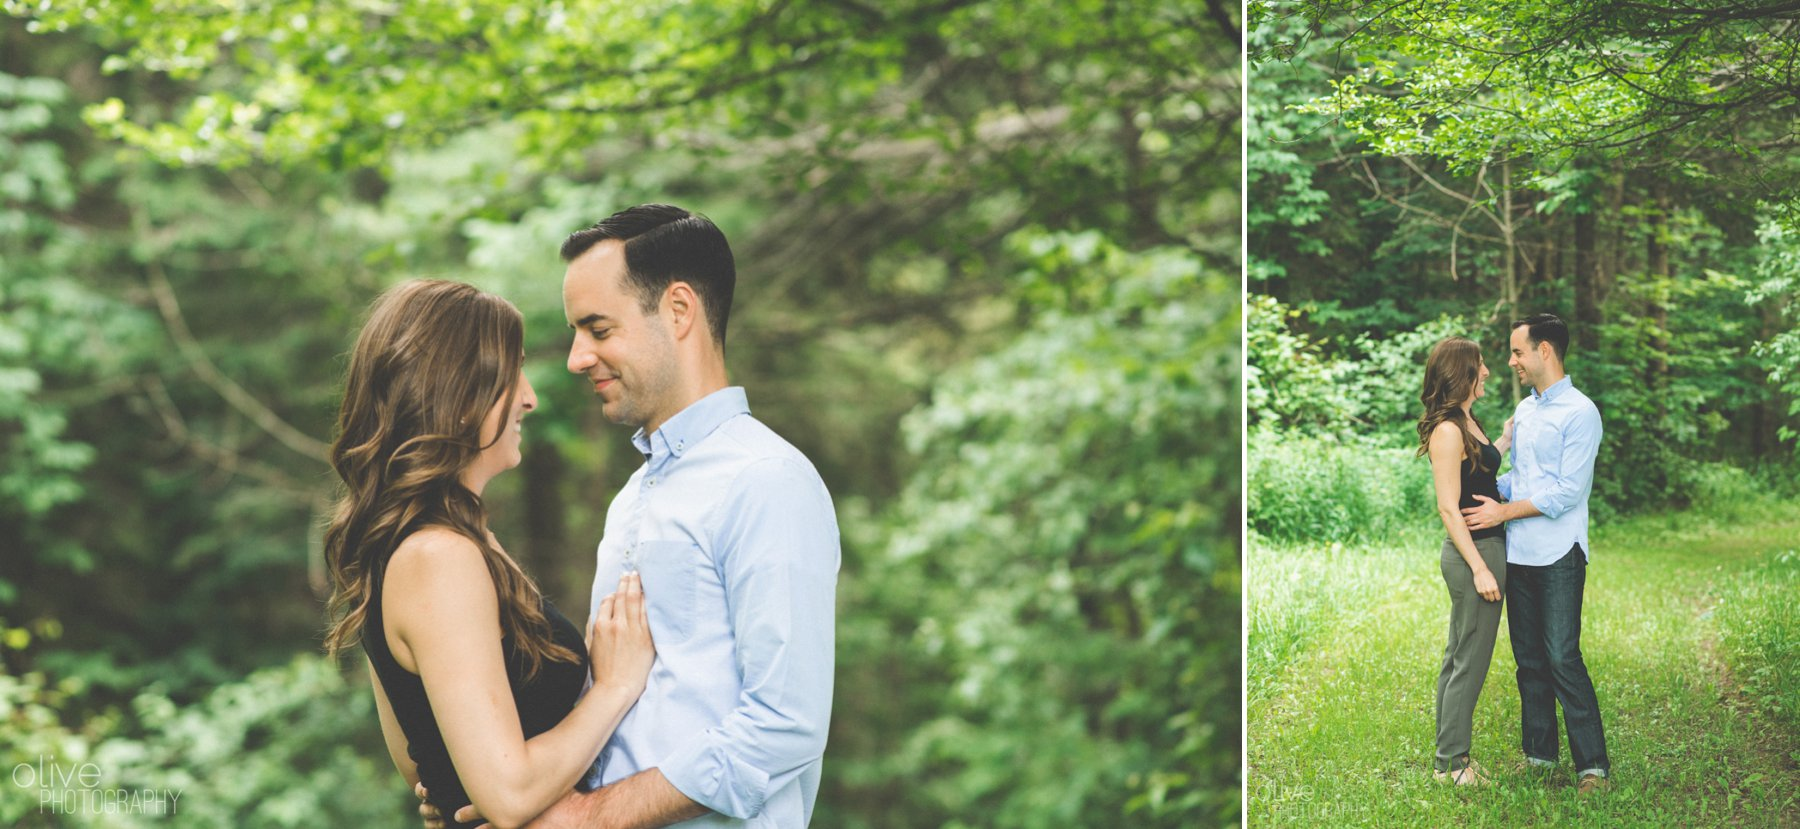 Toronto Wedding Photographer - Olive Photography_0797